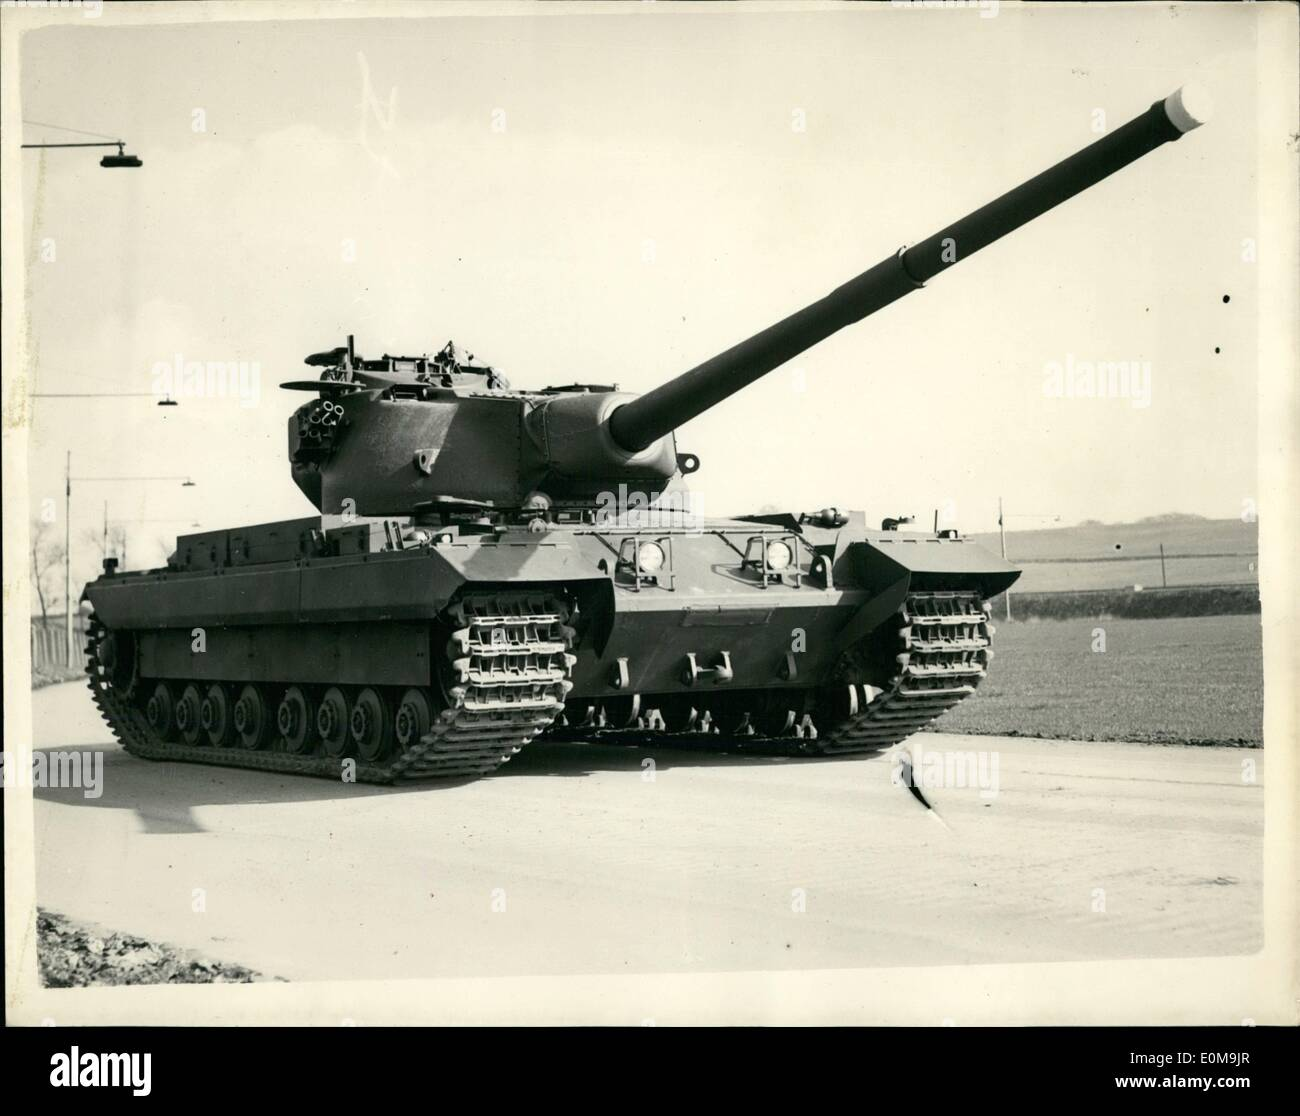 Apr. 04, 1954 - ''The Conqueror'' The Army's New Heavy Gun Tank On Show: The War Office and the Ministry of Supply announce that the heavy gun tank to be named ''The Conqueror'' is now in limited production. Initial issues for troop trials to the British Army in Germany will begin in the next two or three months. This tank will be complementary to and not a replacement of the Centurion Tank. The Conqueror's development in volved the solution of many problems in suspension, power and transmission and in the gun control system - Stock Image